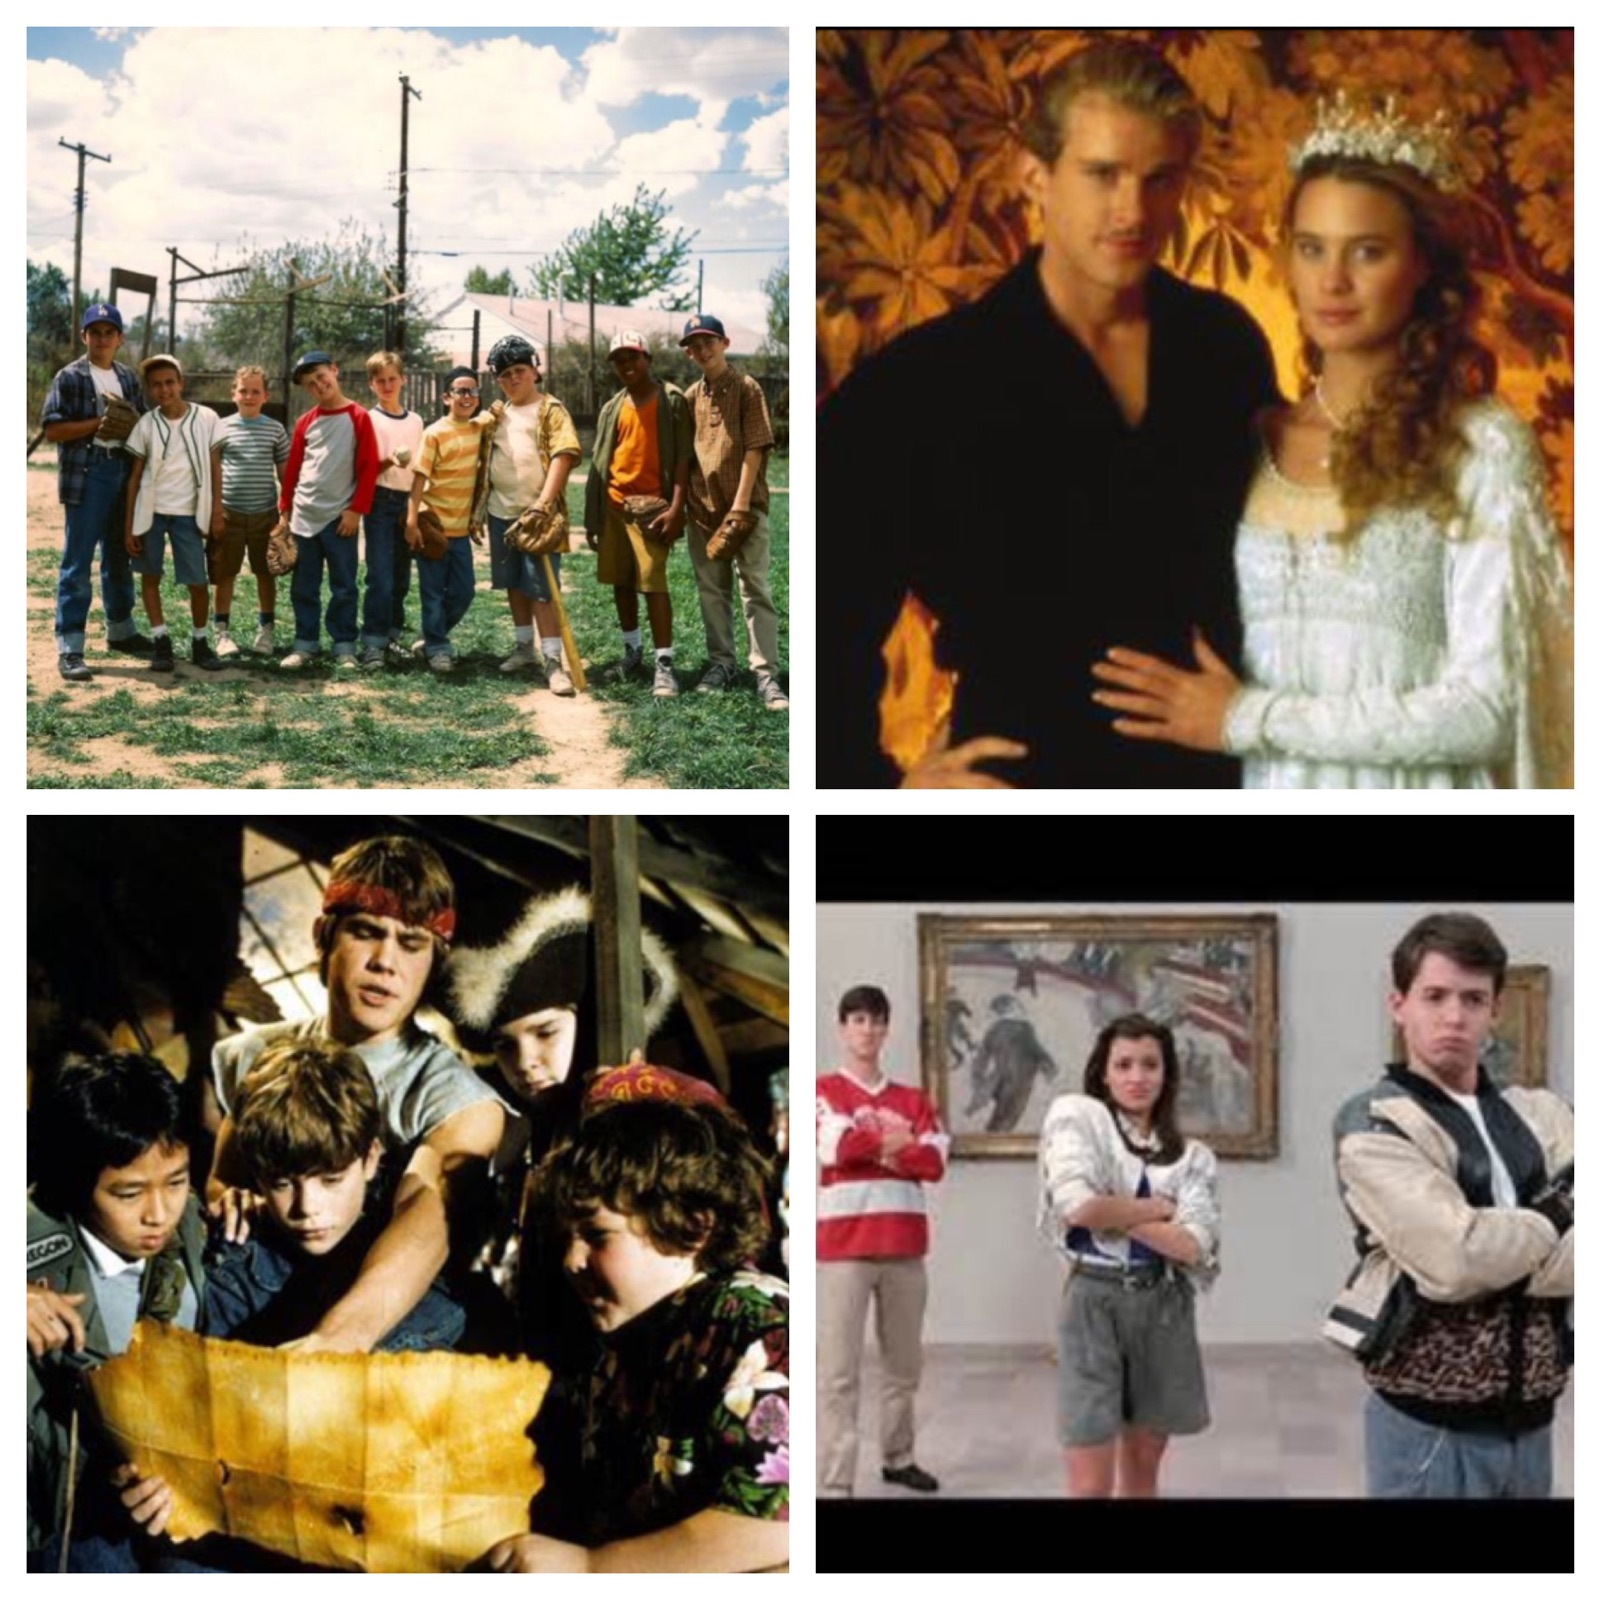 Sandlot, Princess Bride, The Goonies and Ferris Bueller's Day Off will all be shown at the Living Fort Wayne Film Series!